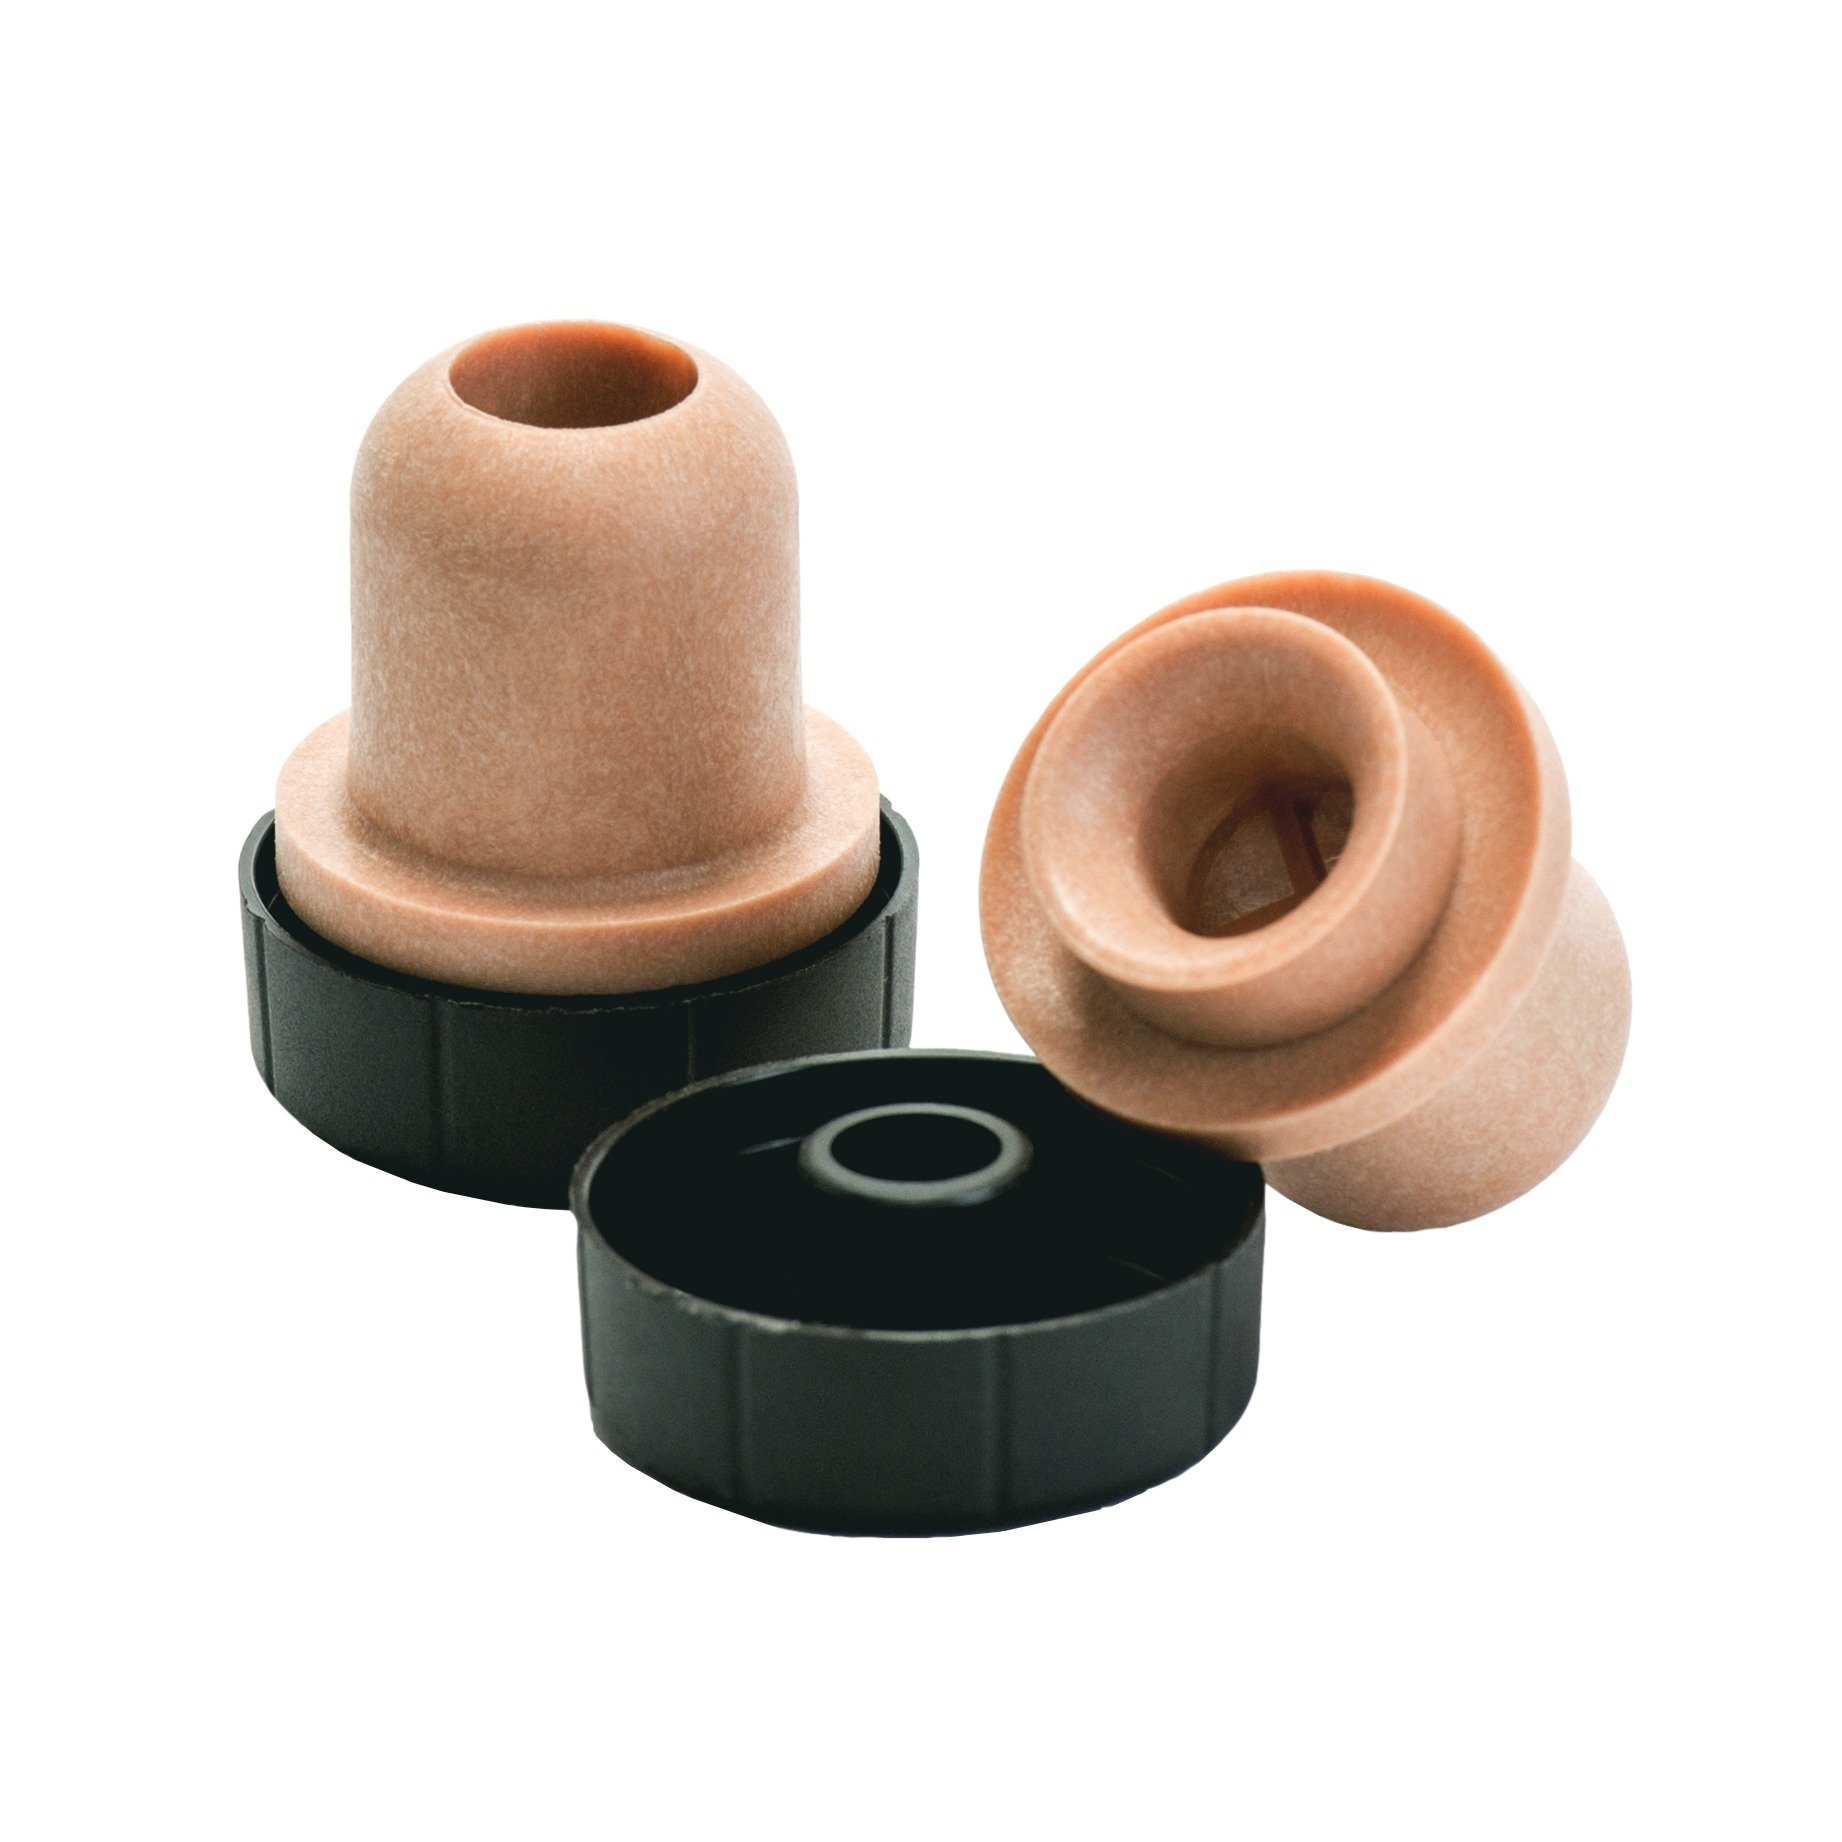 North Mountain Supply Bar Top Tasting Corks - Synthetic Pour Spout with Plastic Tops - Bag of 12